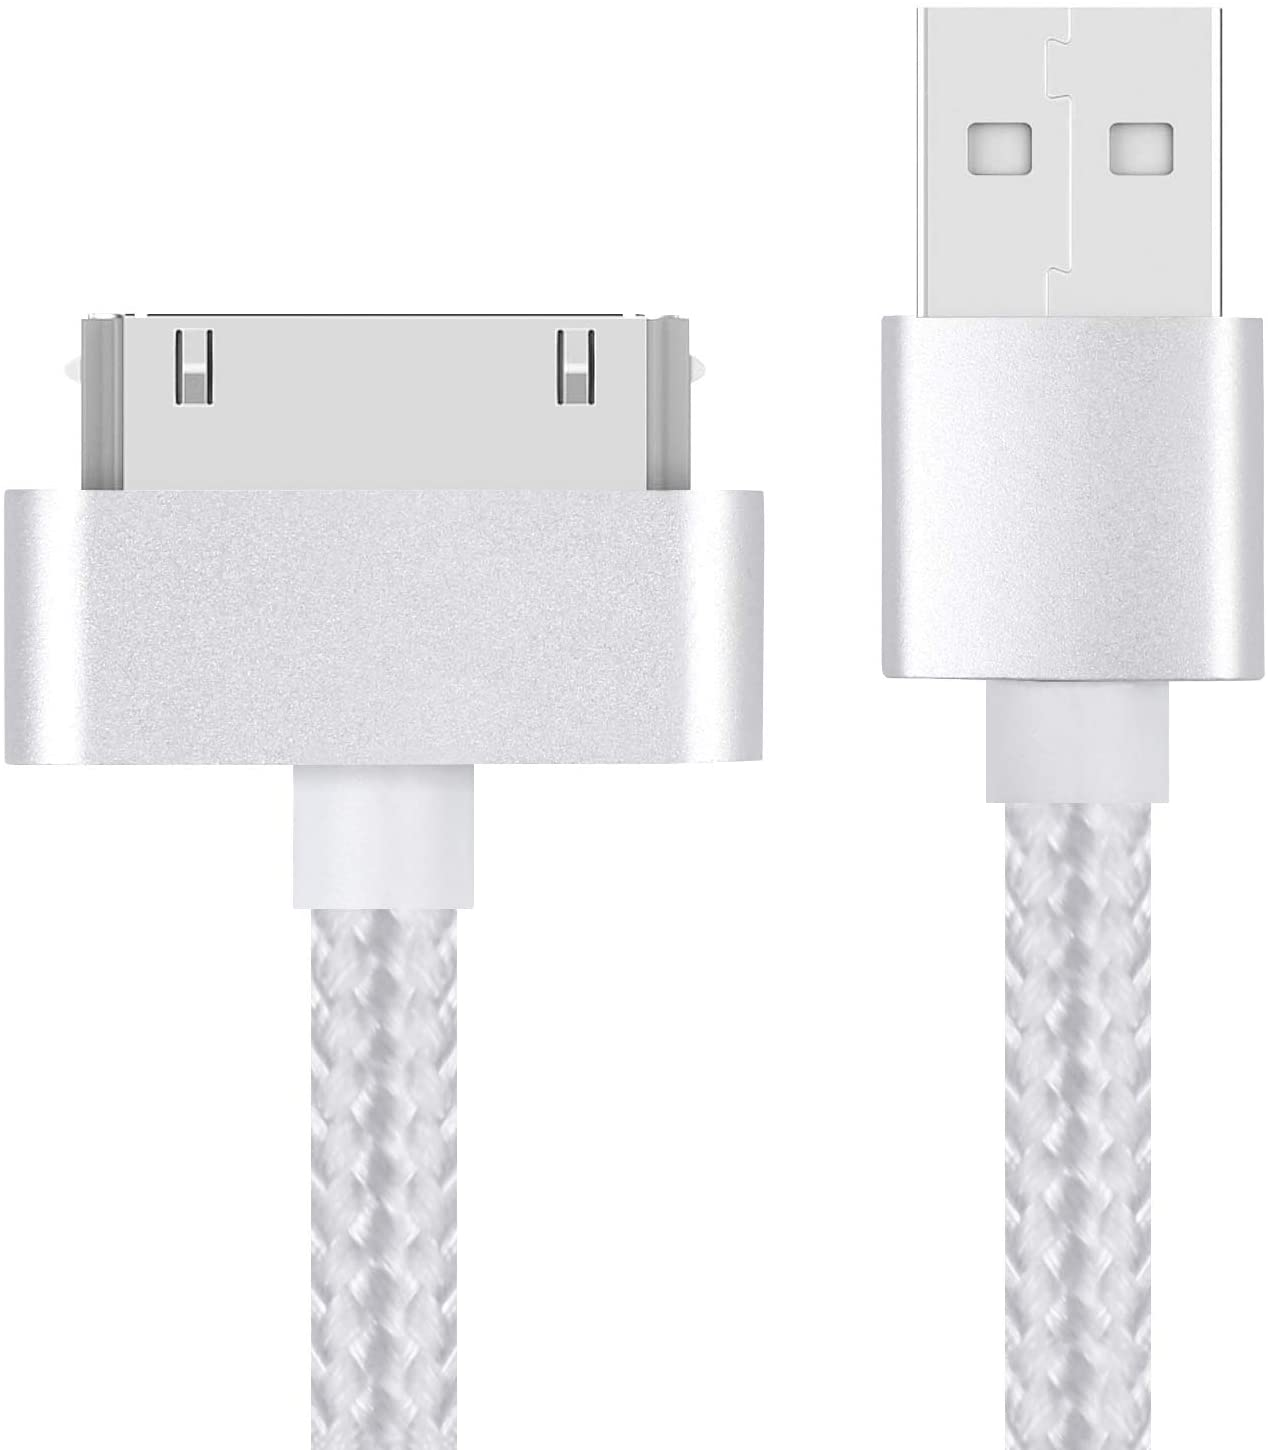 EVERMARKET 3 Feet Replacement High Speed USB 2.0 Nylon Braided Sync and Charging Charger Cable Cord for Apple iPhone 4, 4s, 3G, 3GS, 2G, iPad 1/2/3 iPod Touch, iPod Nano - Silver